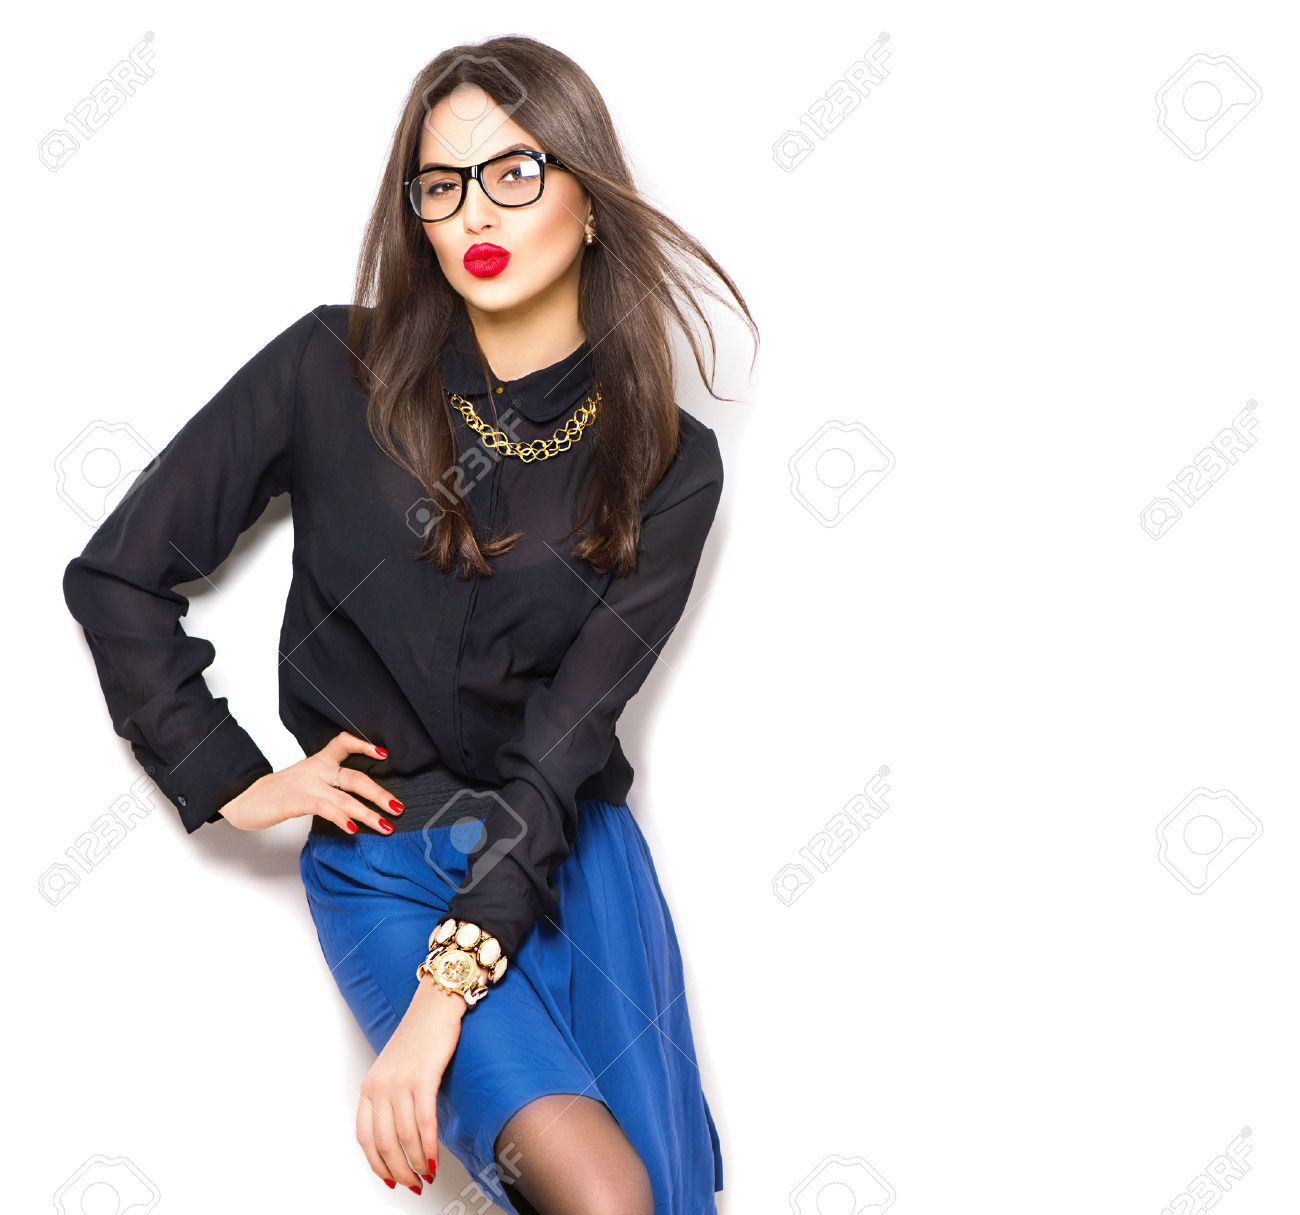 Beauty sexy fashion model girl wearing glasses, isolated on white background Stock Photo - 52316174